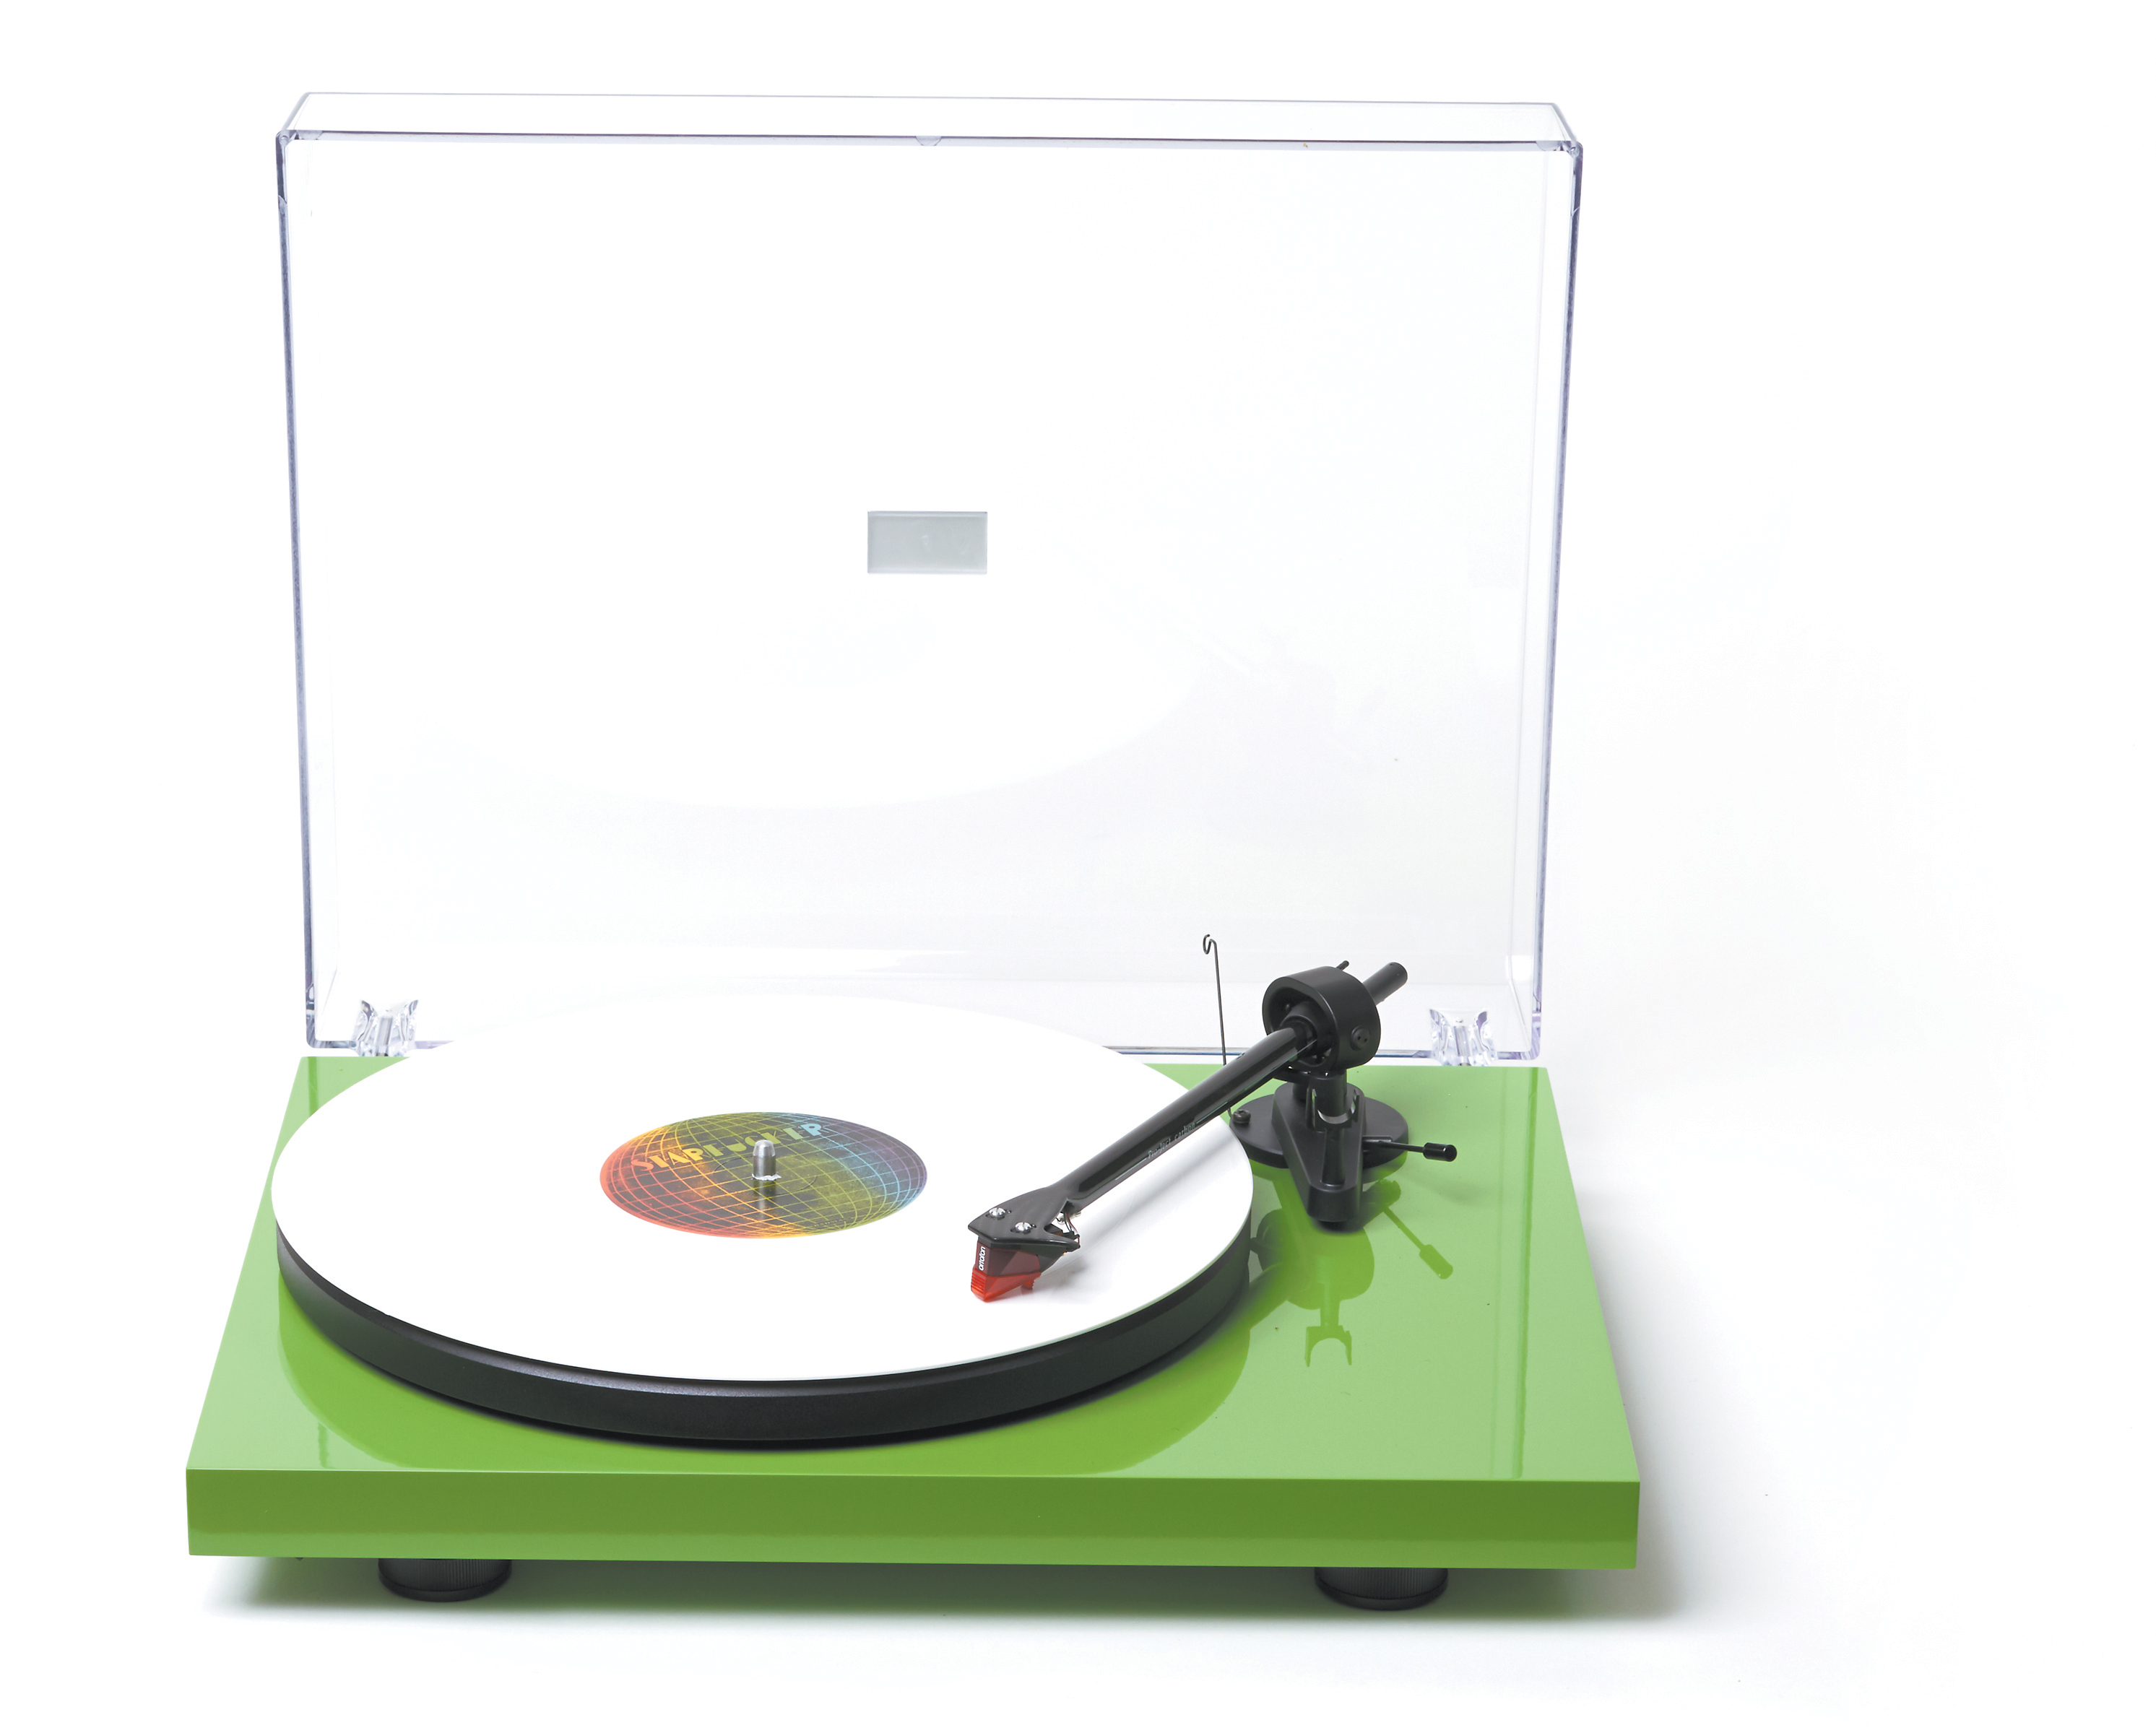 EchoAudio_Turntable